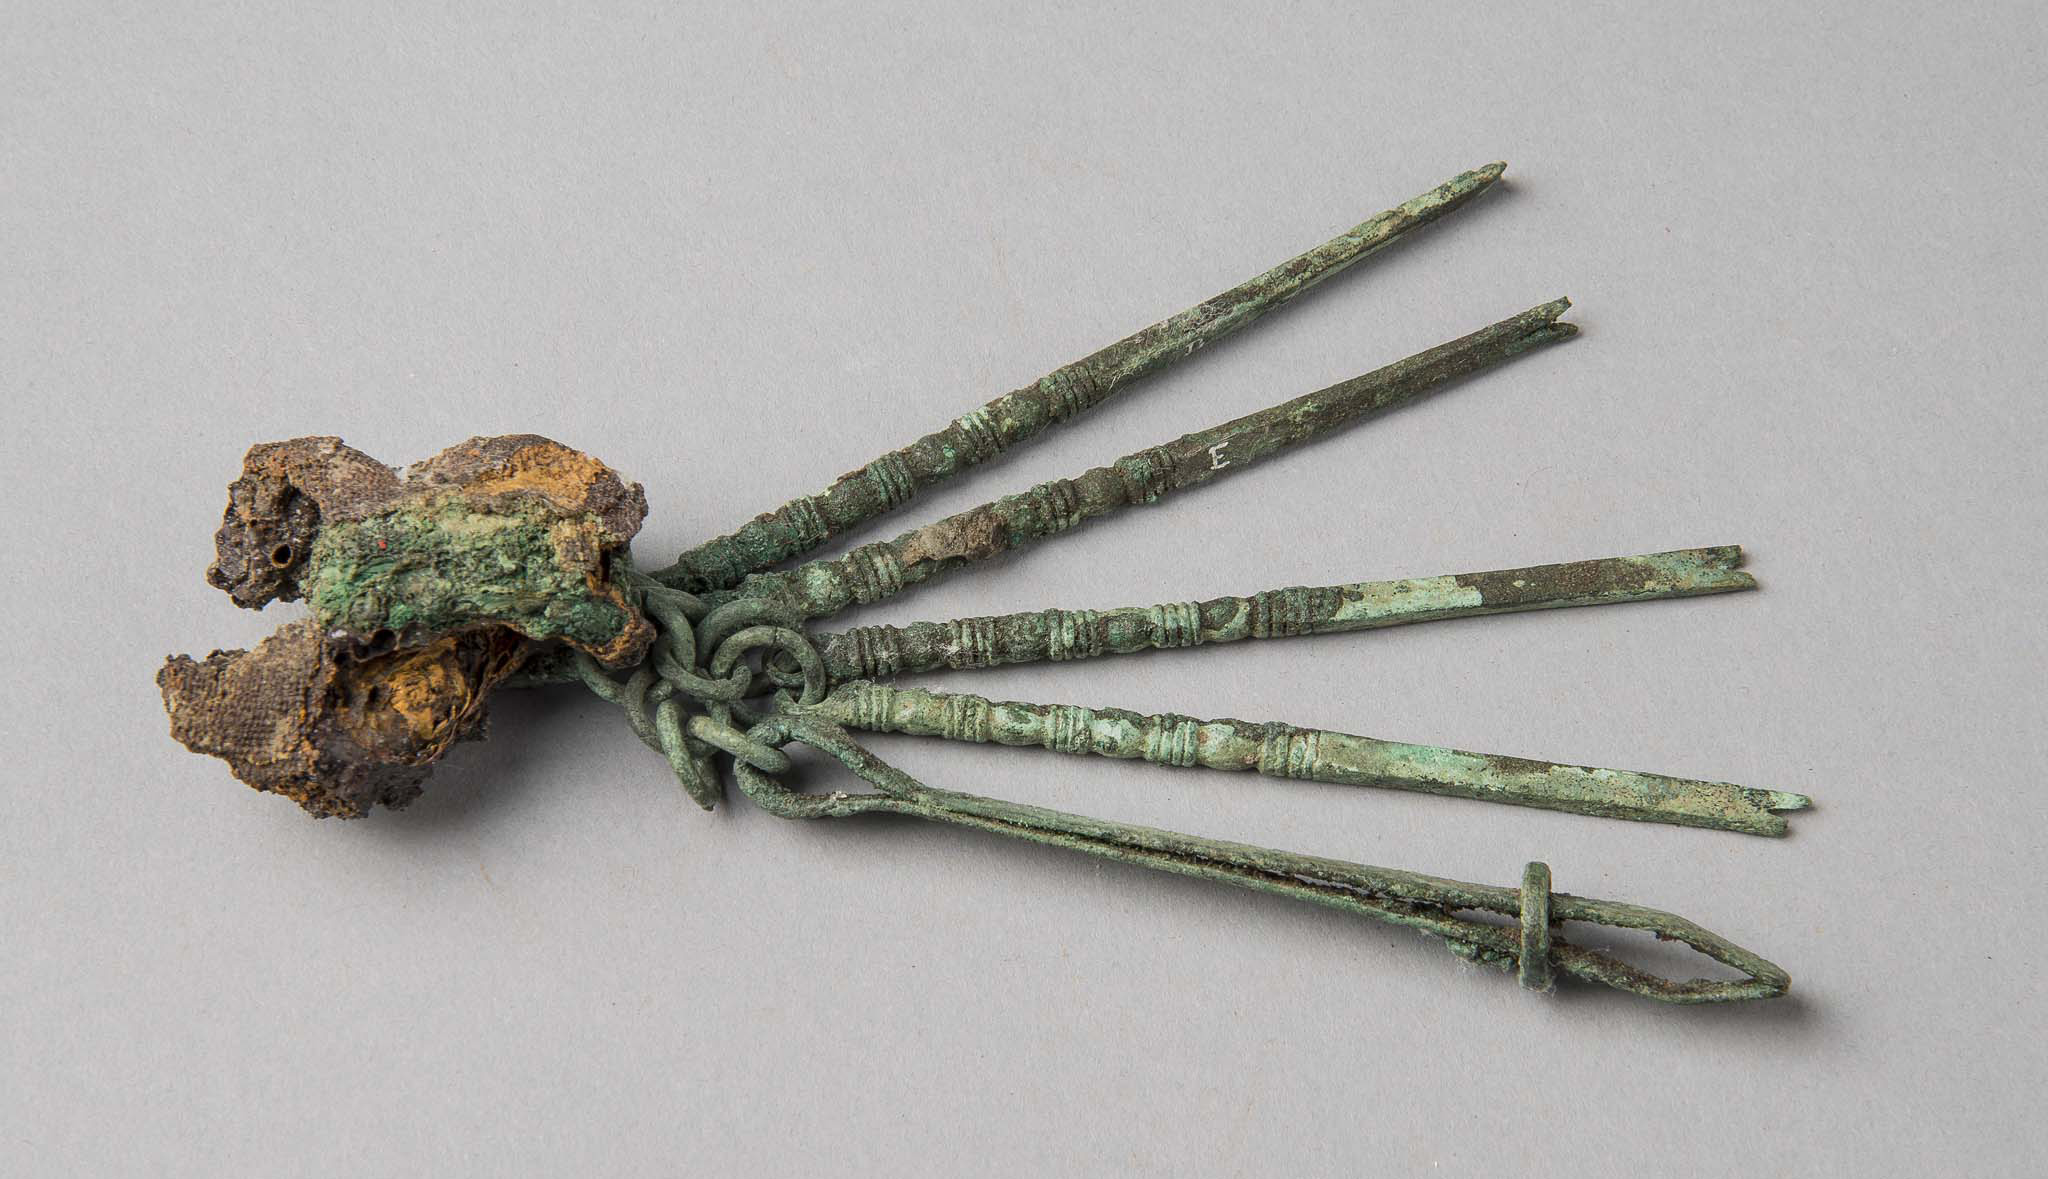 Medical Set with Forceps and Various Hooks; Rome; Roman period; Bronze; 130 x 32 mm (average) KM 1485; Walter Dennison, 1909.